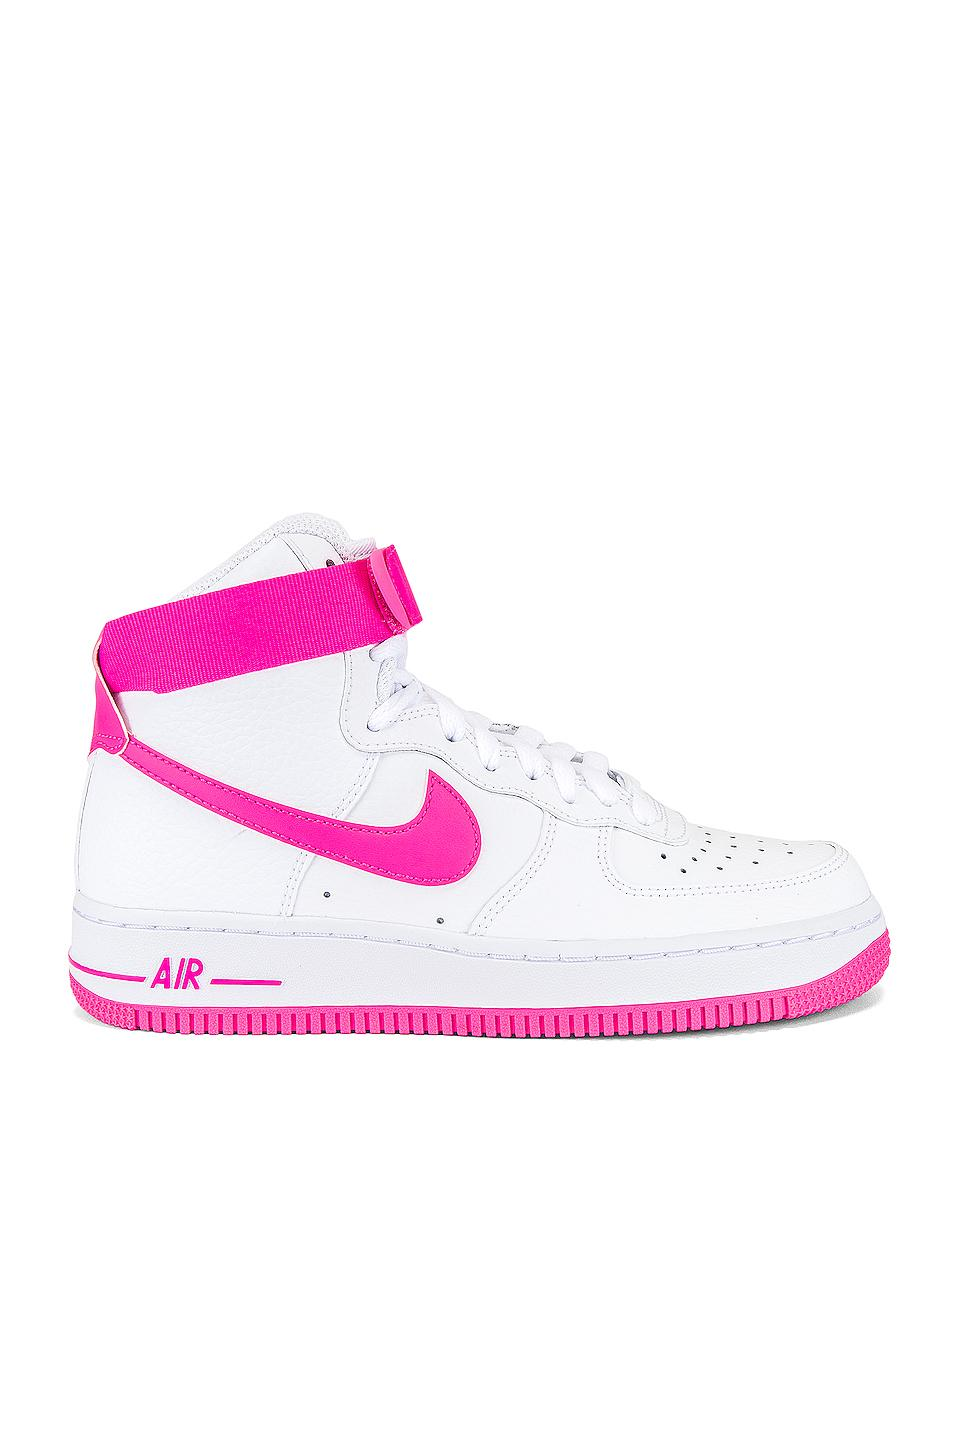 revisión camino Saco  Nike Leather Women's Air Force 1 Hi Sneaker in White & Hot Pink (Pink) -  Lyst